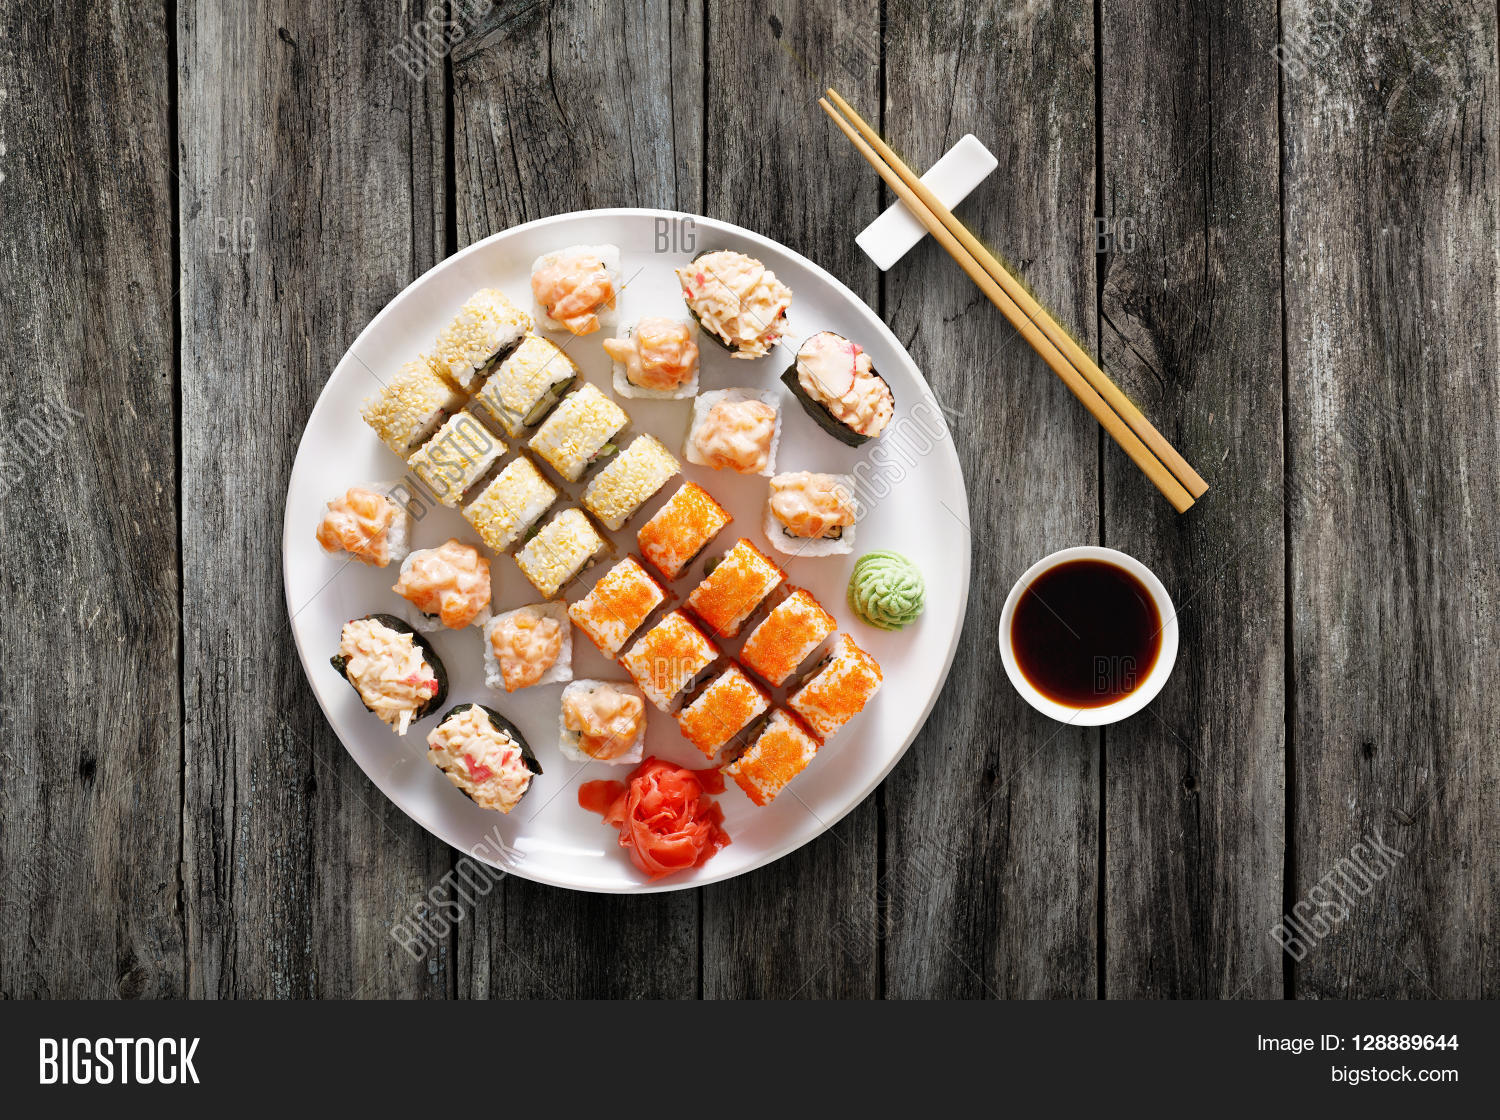 Plate With Food Top View Japanese Food Restaurant Sushi Image And Photo Bigstock